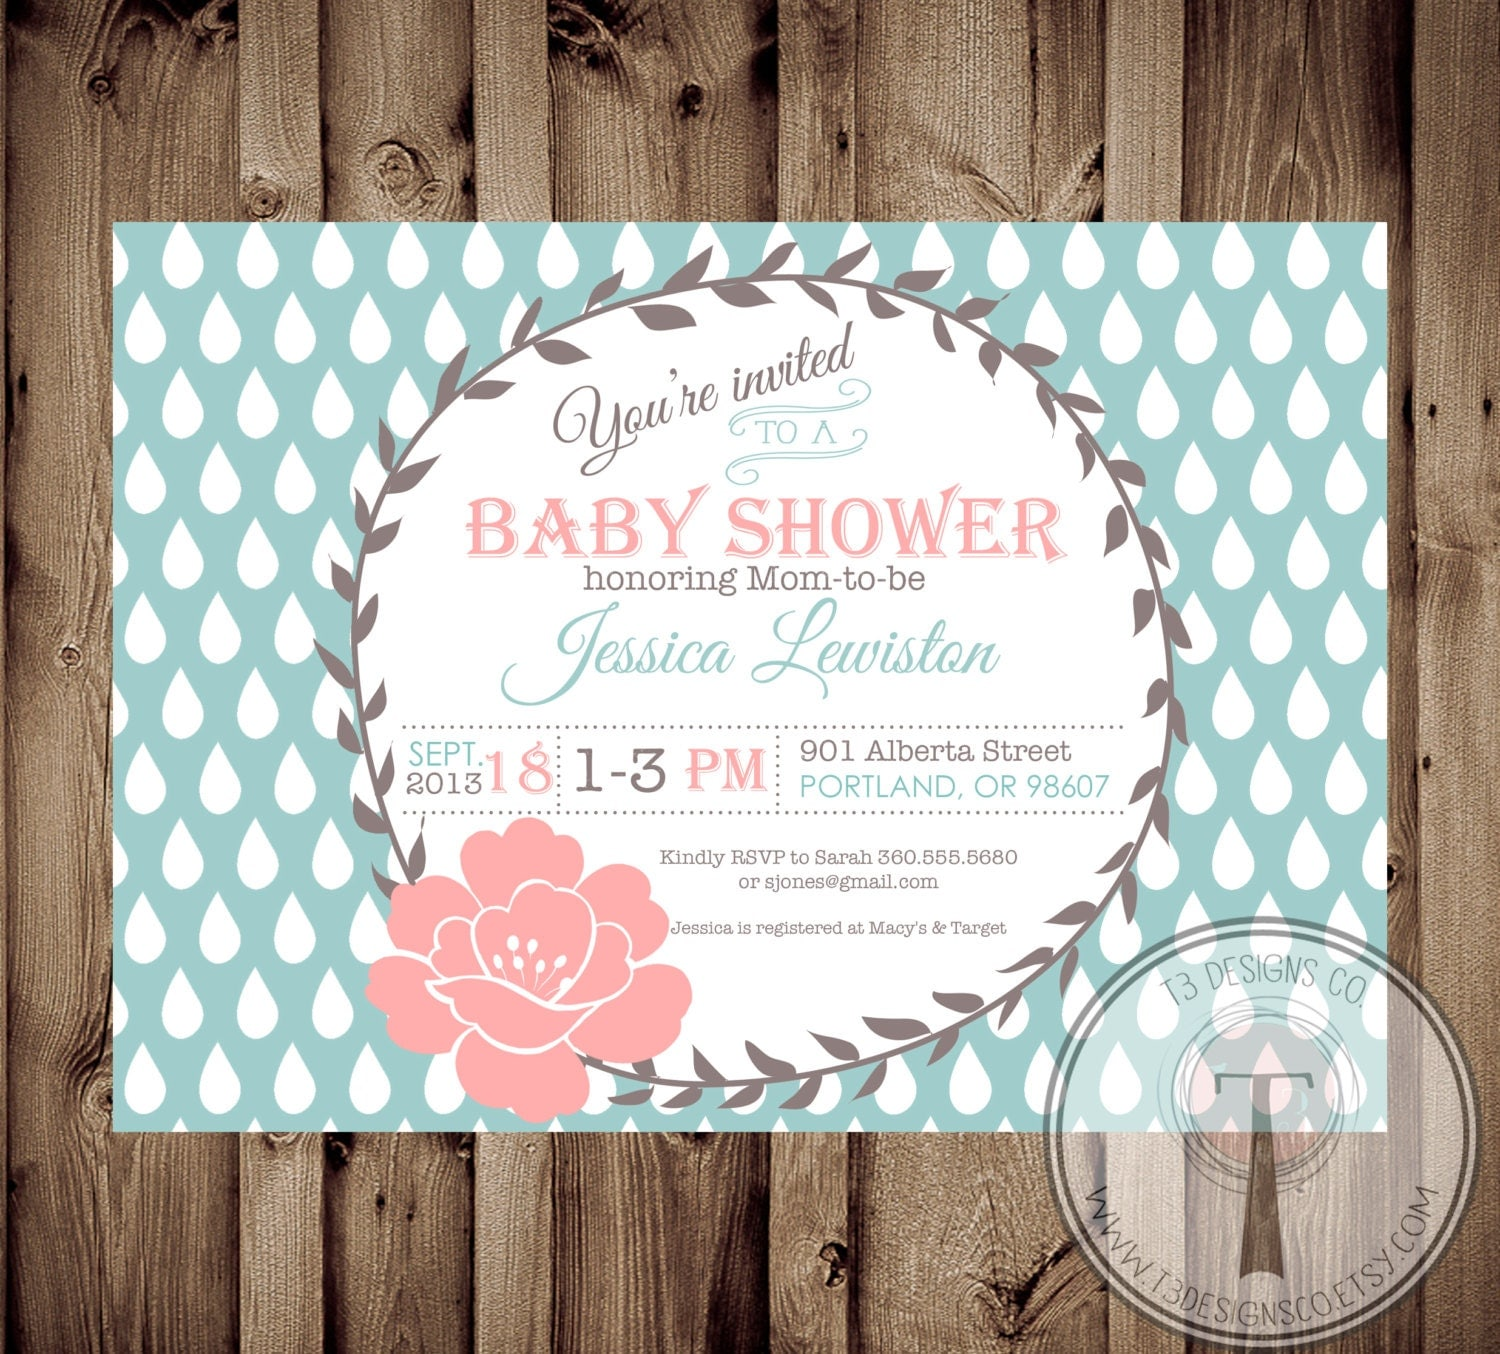 Baby Shower Invitation, BABY GIRL, Modern, Vintage, Baby Shower,invite,  Invitation, Baby Shower Brunch, Brunch, Modern Vintage, Square